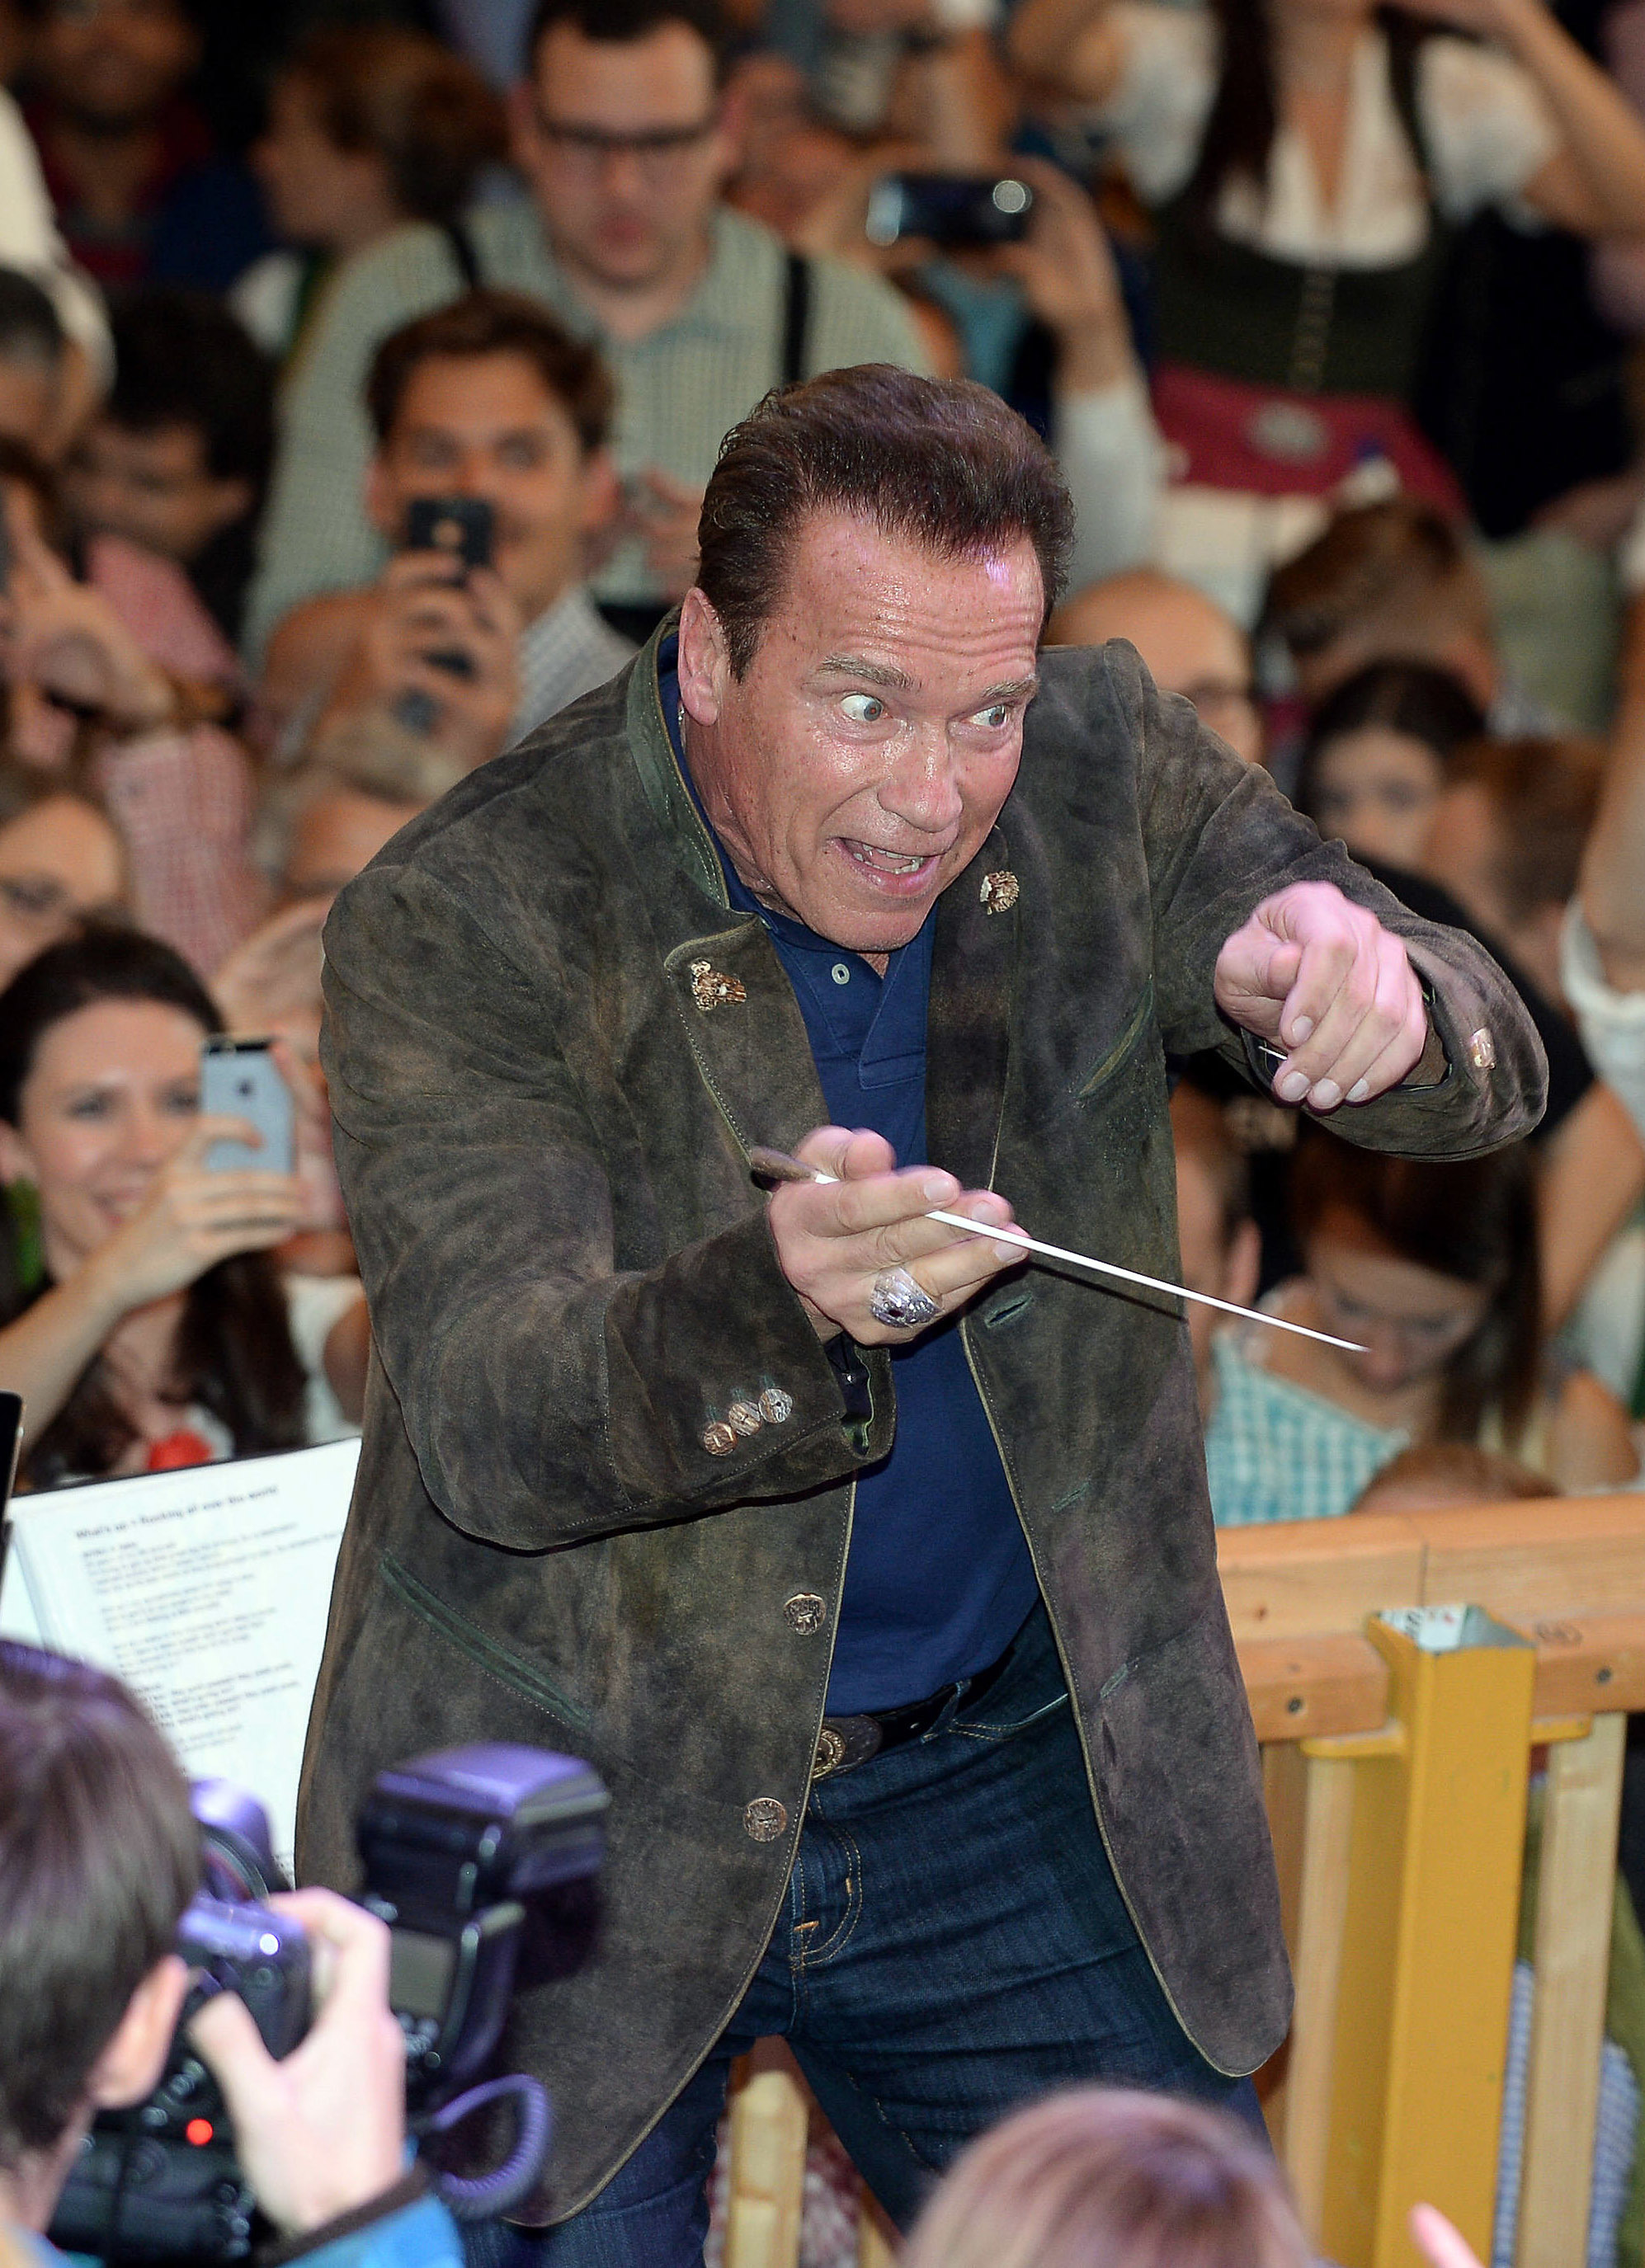 Arnold Schwarzenegger attends the Oktoberfest at Theresienwiese in Munich, Germany on Sept. 26, 2017.